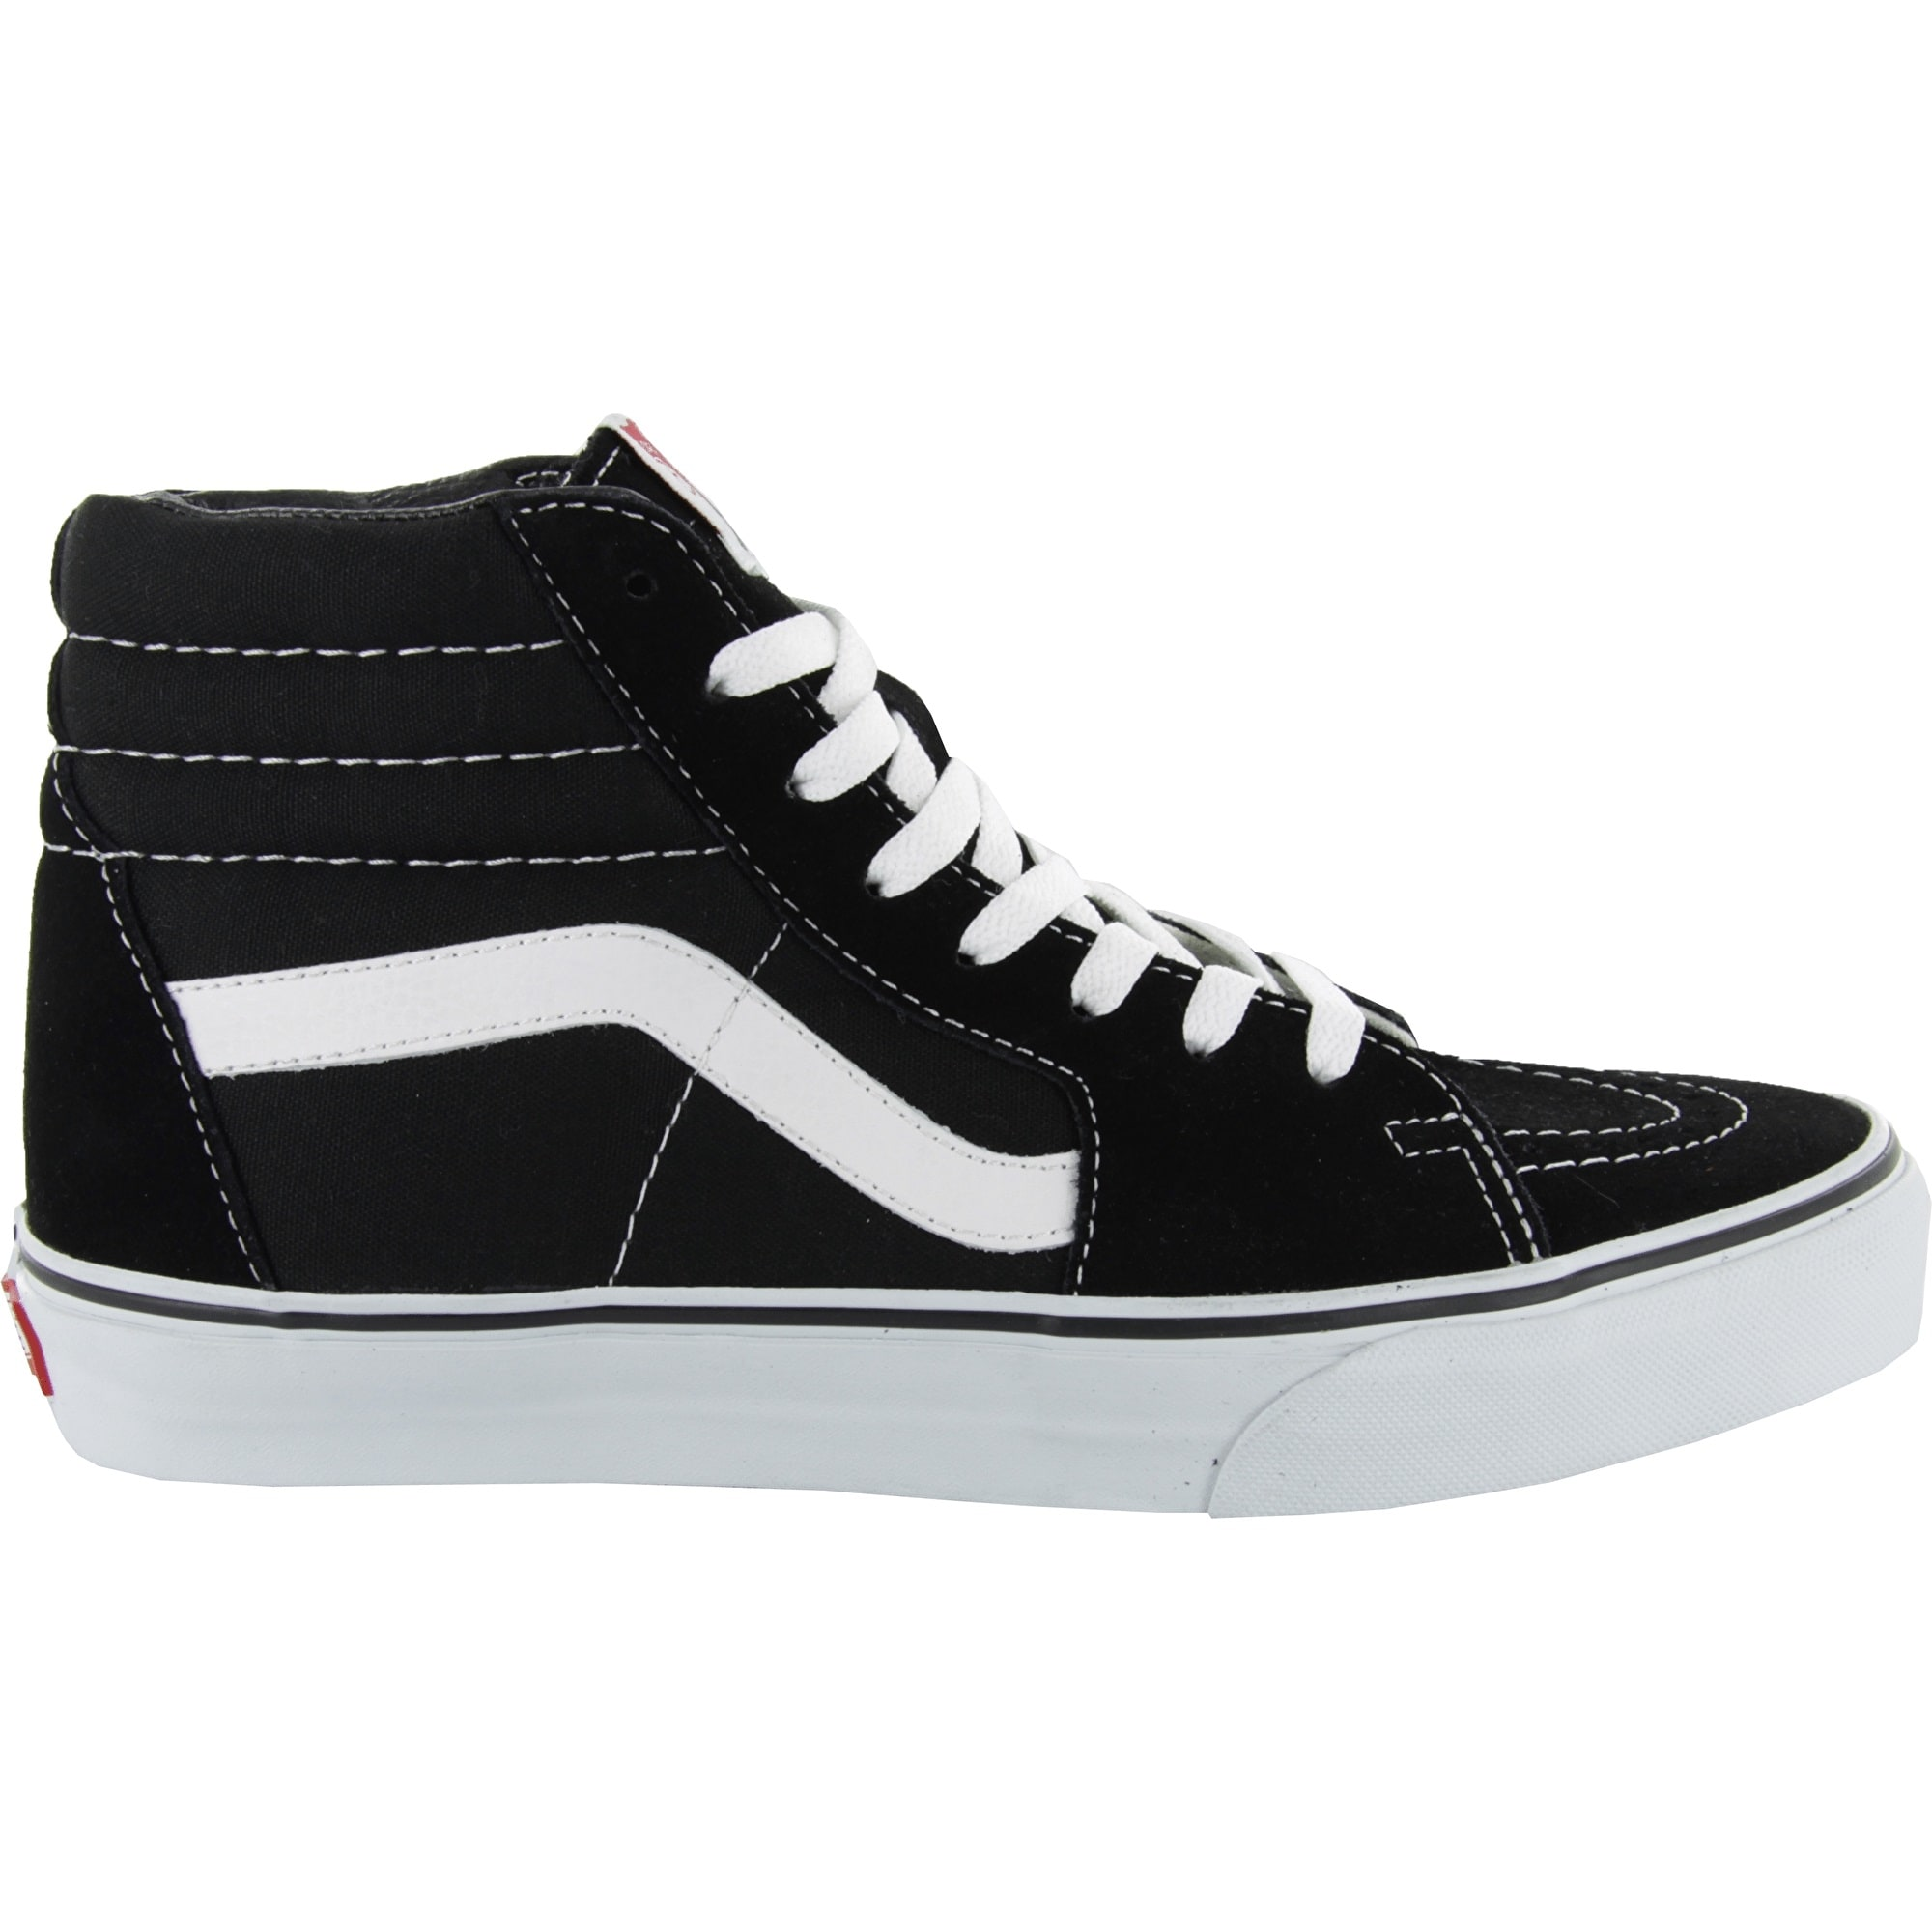 Vans Sk8 Hi Skate Shoes Black White Vans Clothing